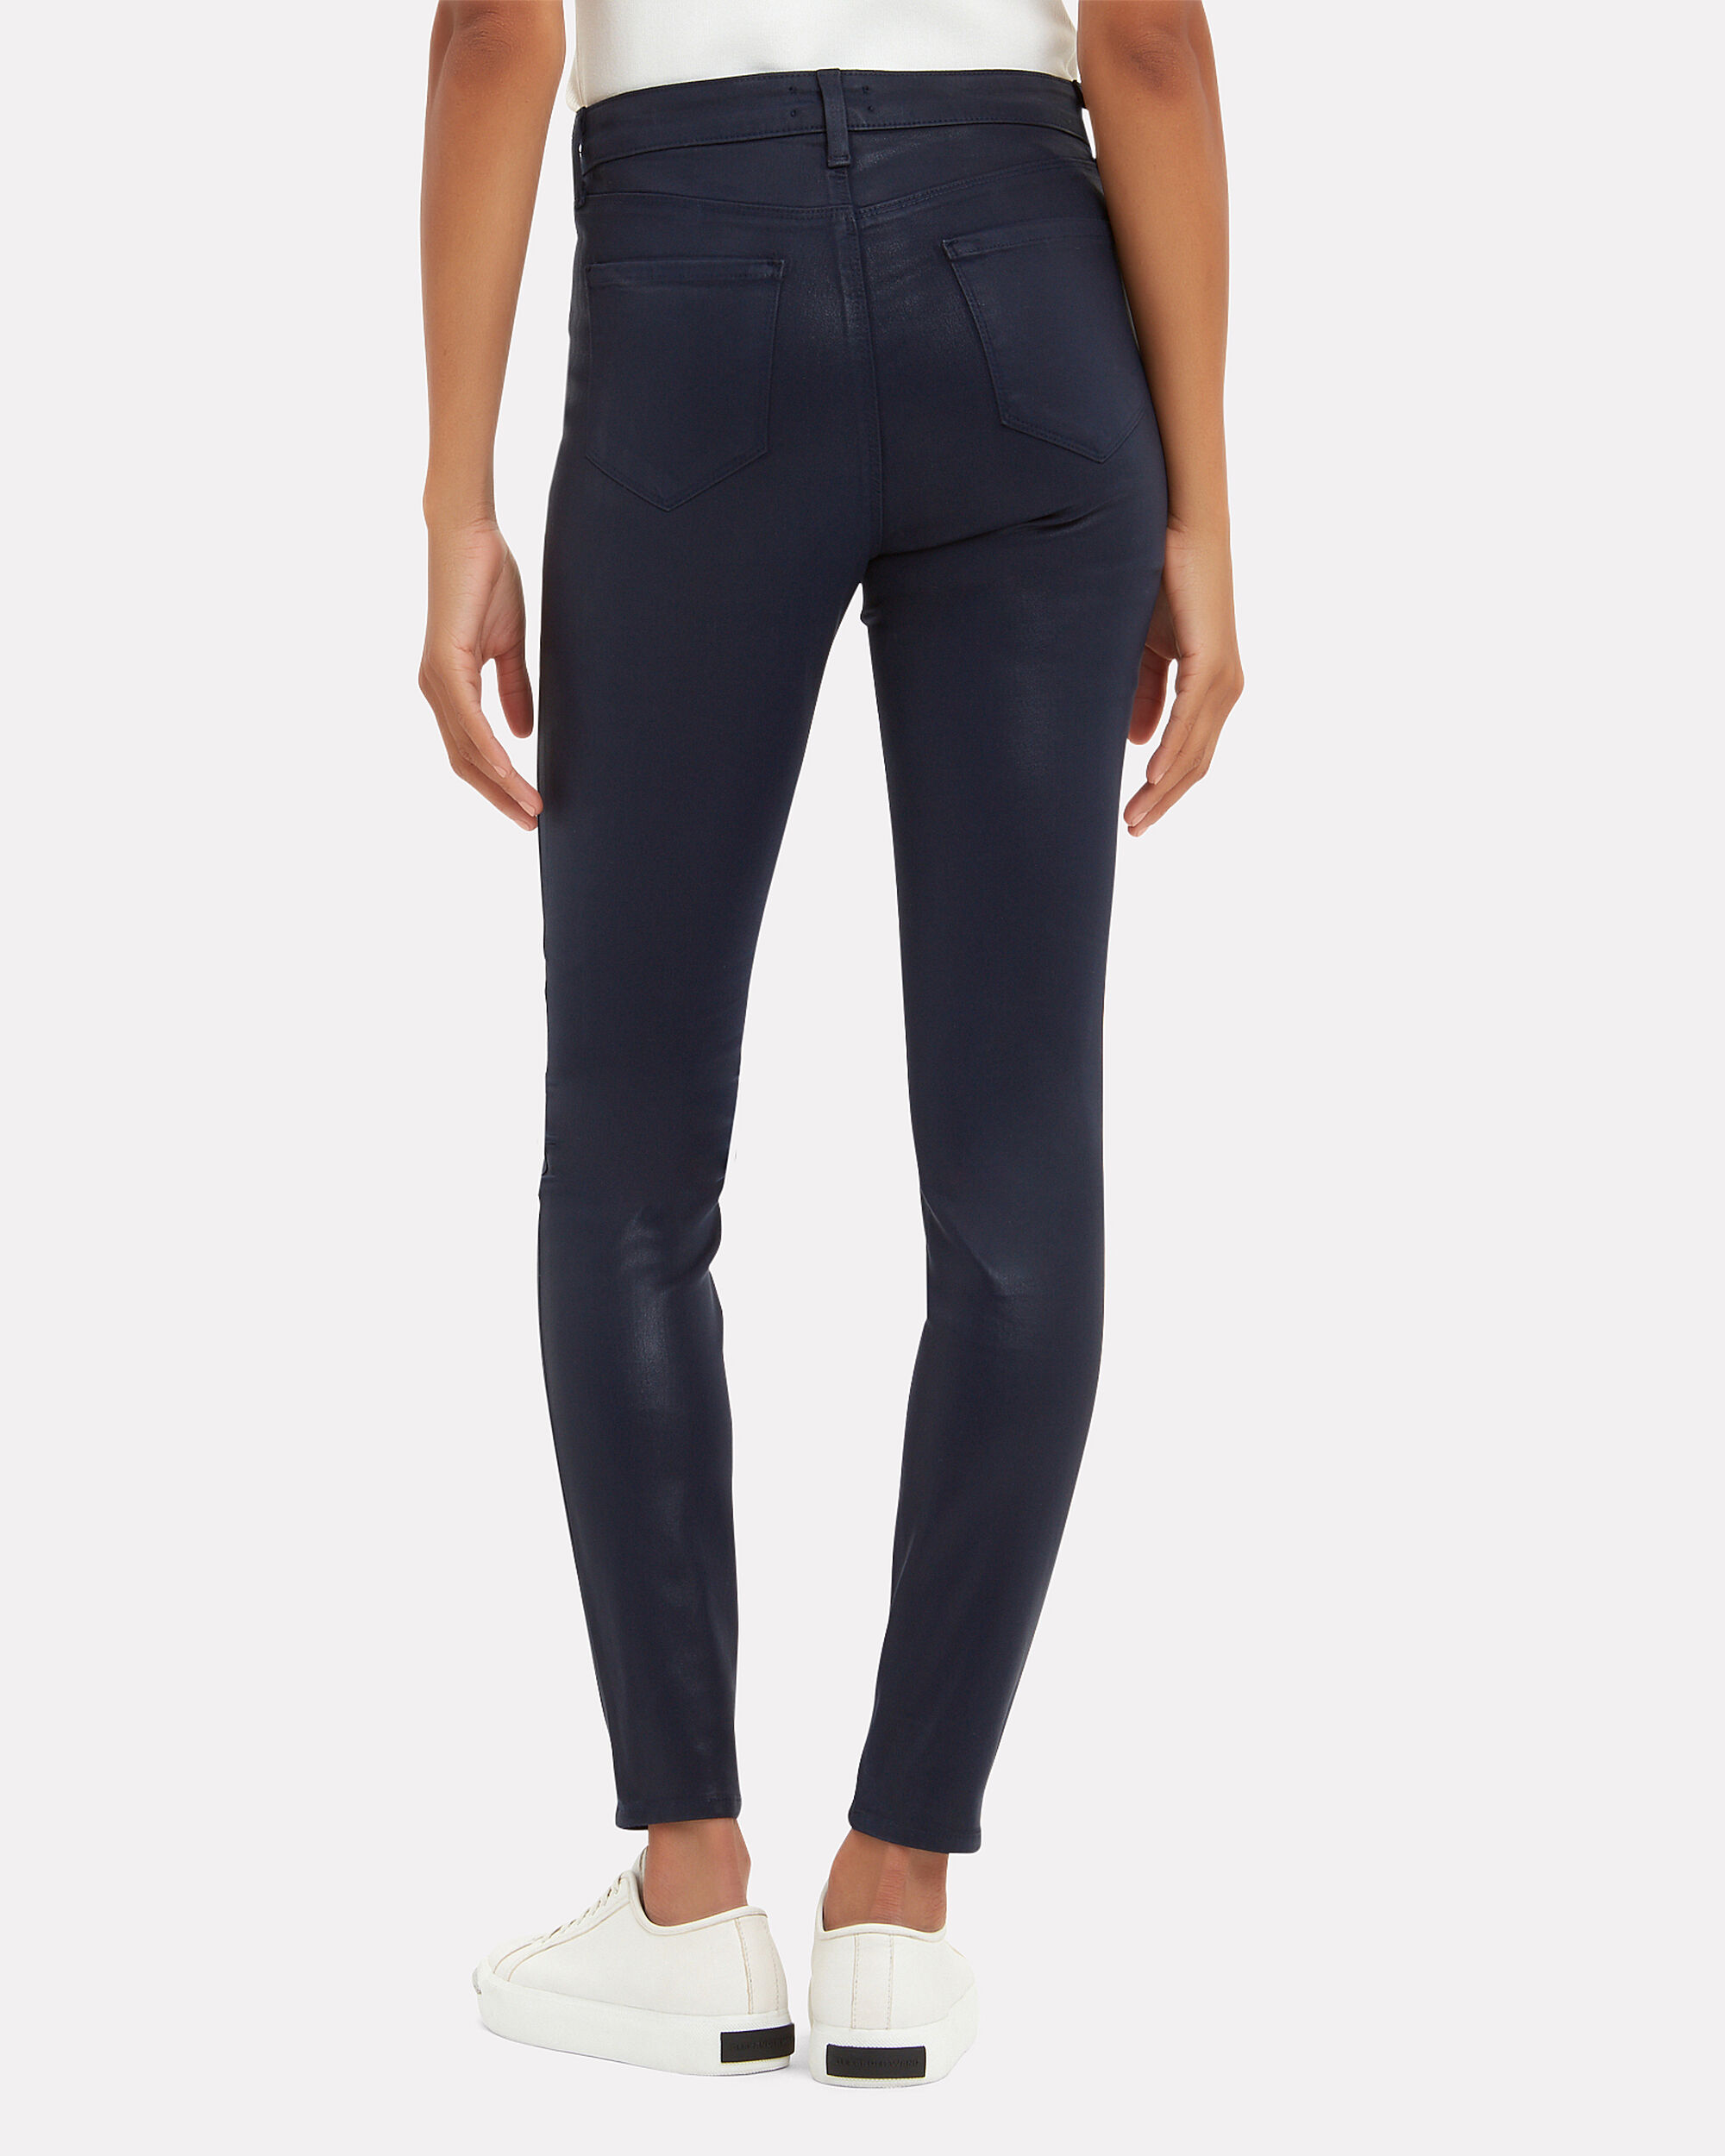 Marguerite Coated Jeans, NAVY, hi-res